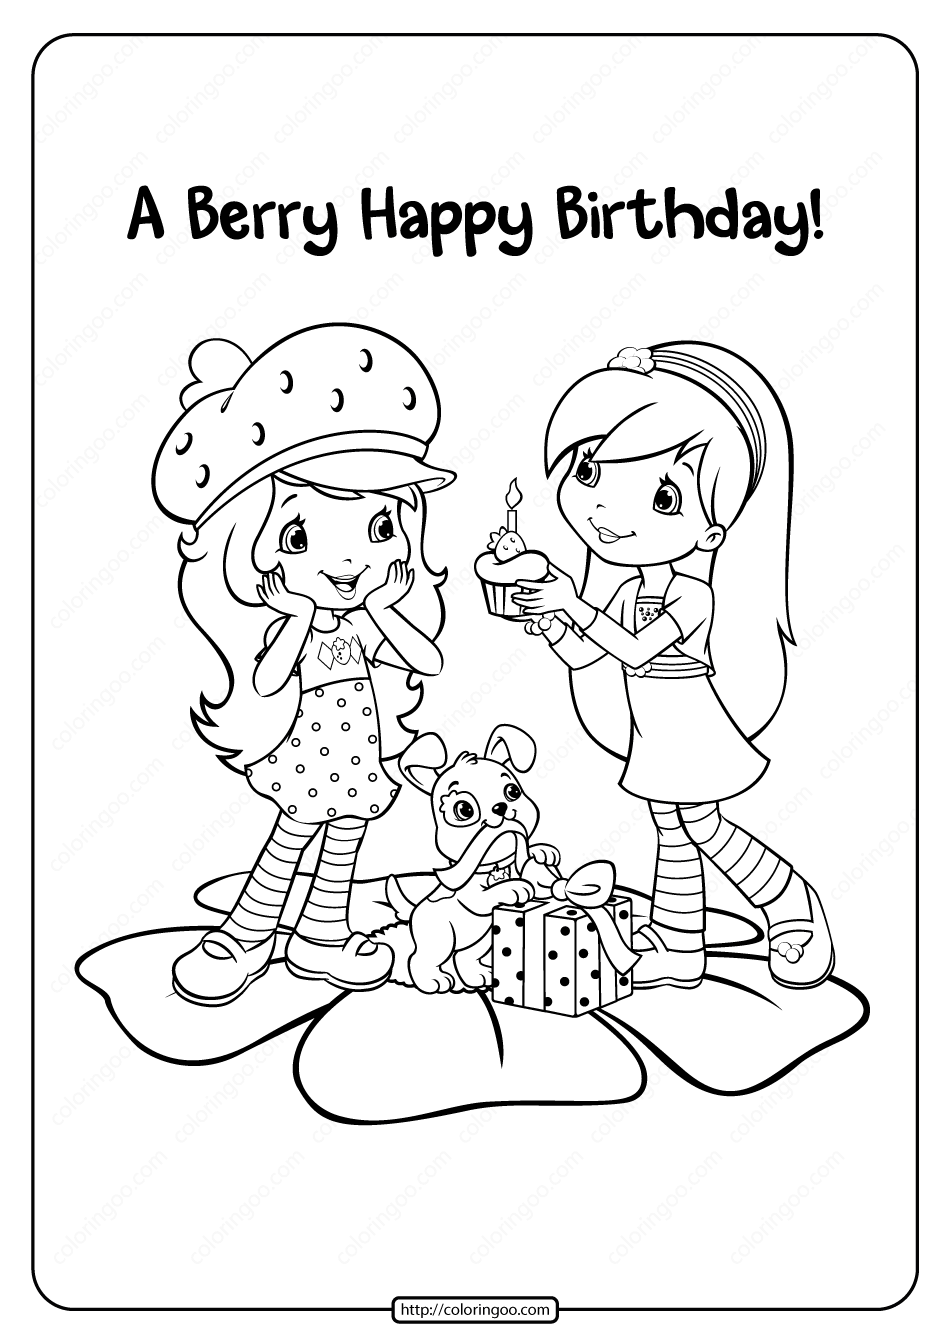 Printable A Berry Happy Birthday Coloring Page